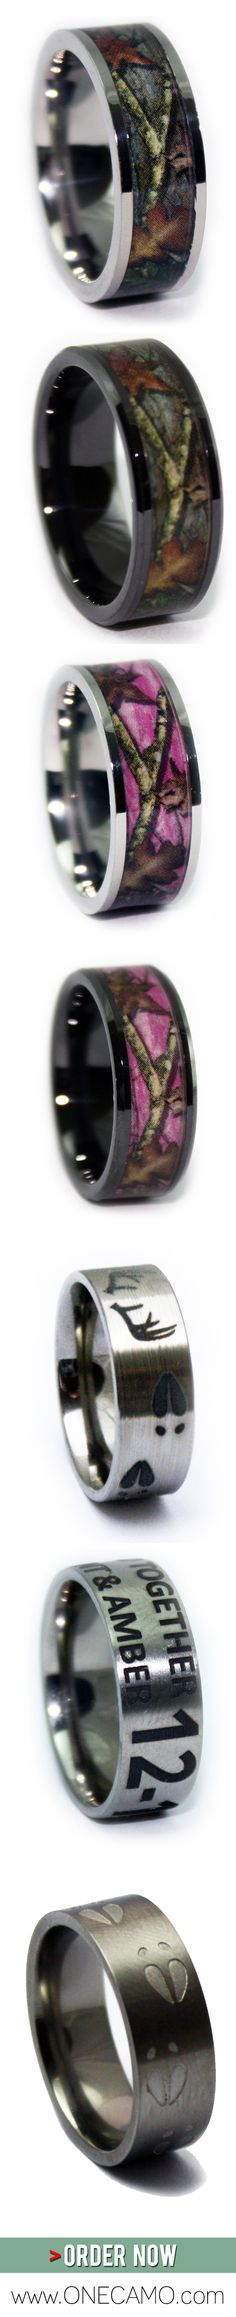 Looking for a gift for your hunter? Having a Camo Wedding? Do you LIVE in Mossy Oak and Realtree Camo apparel? Love the outdoors and hunting? ONECAMO created these Hunting and Camo Rings for you! Order now at www.1CAMO.com